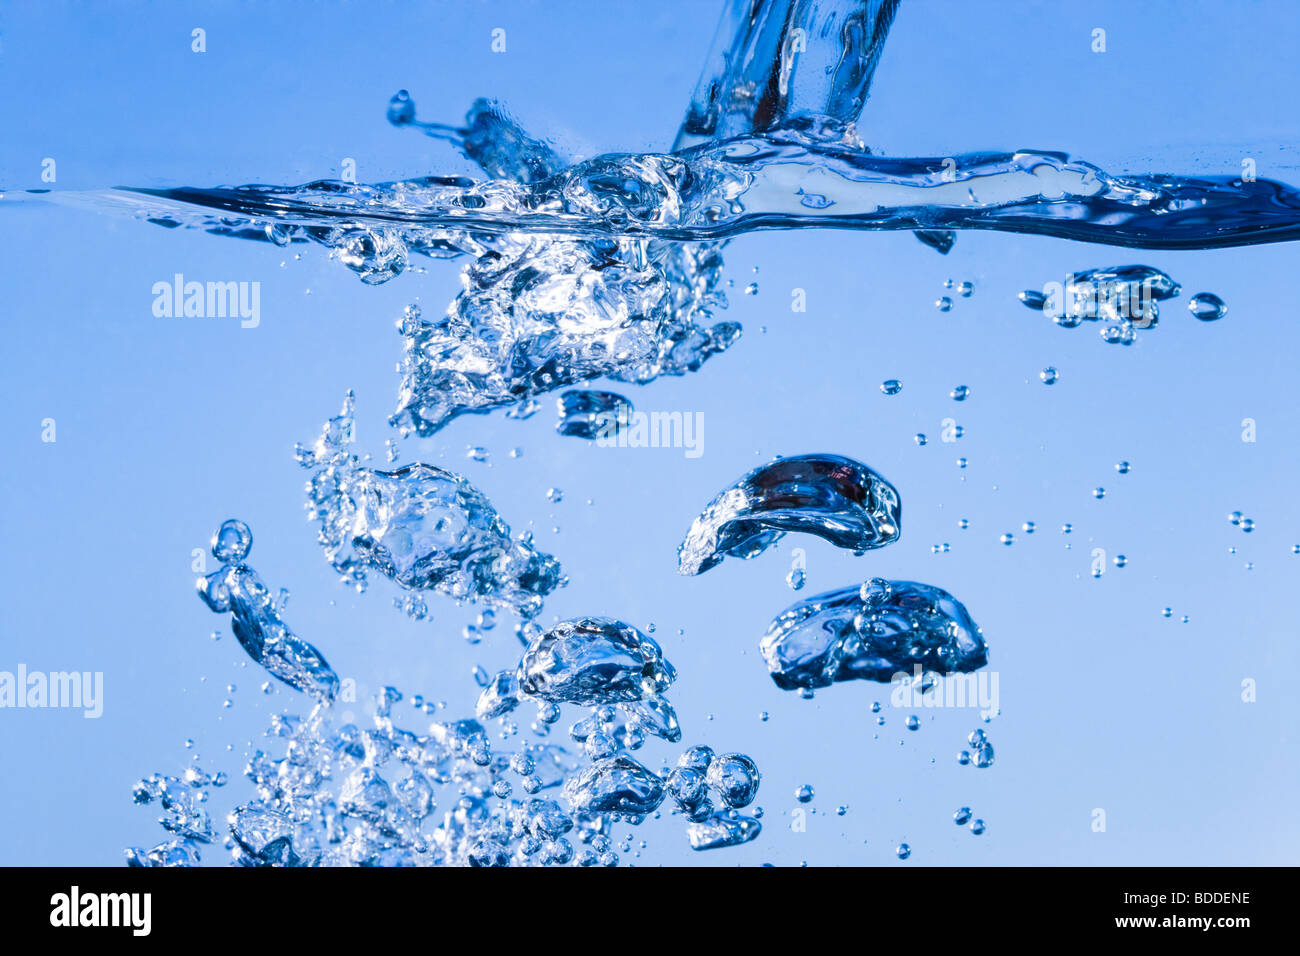 Pouring water creating bubbles under surface - Stock Image